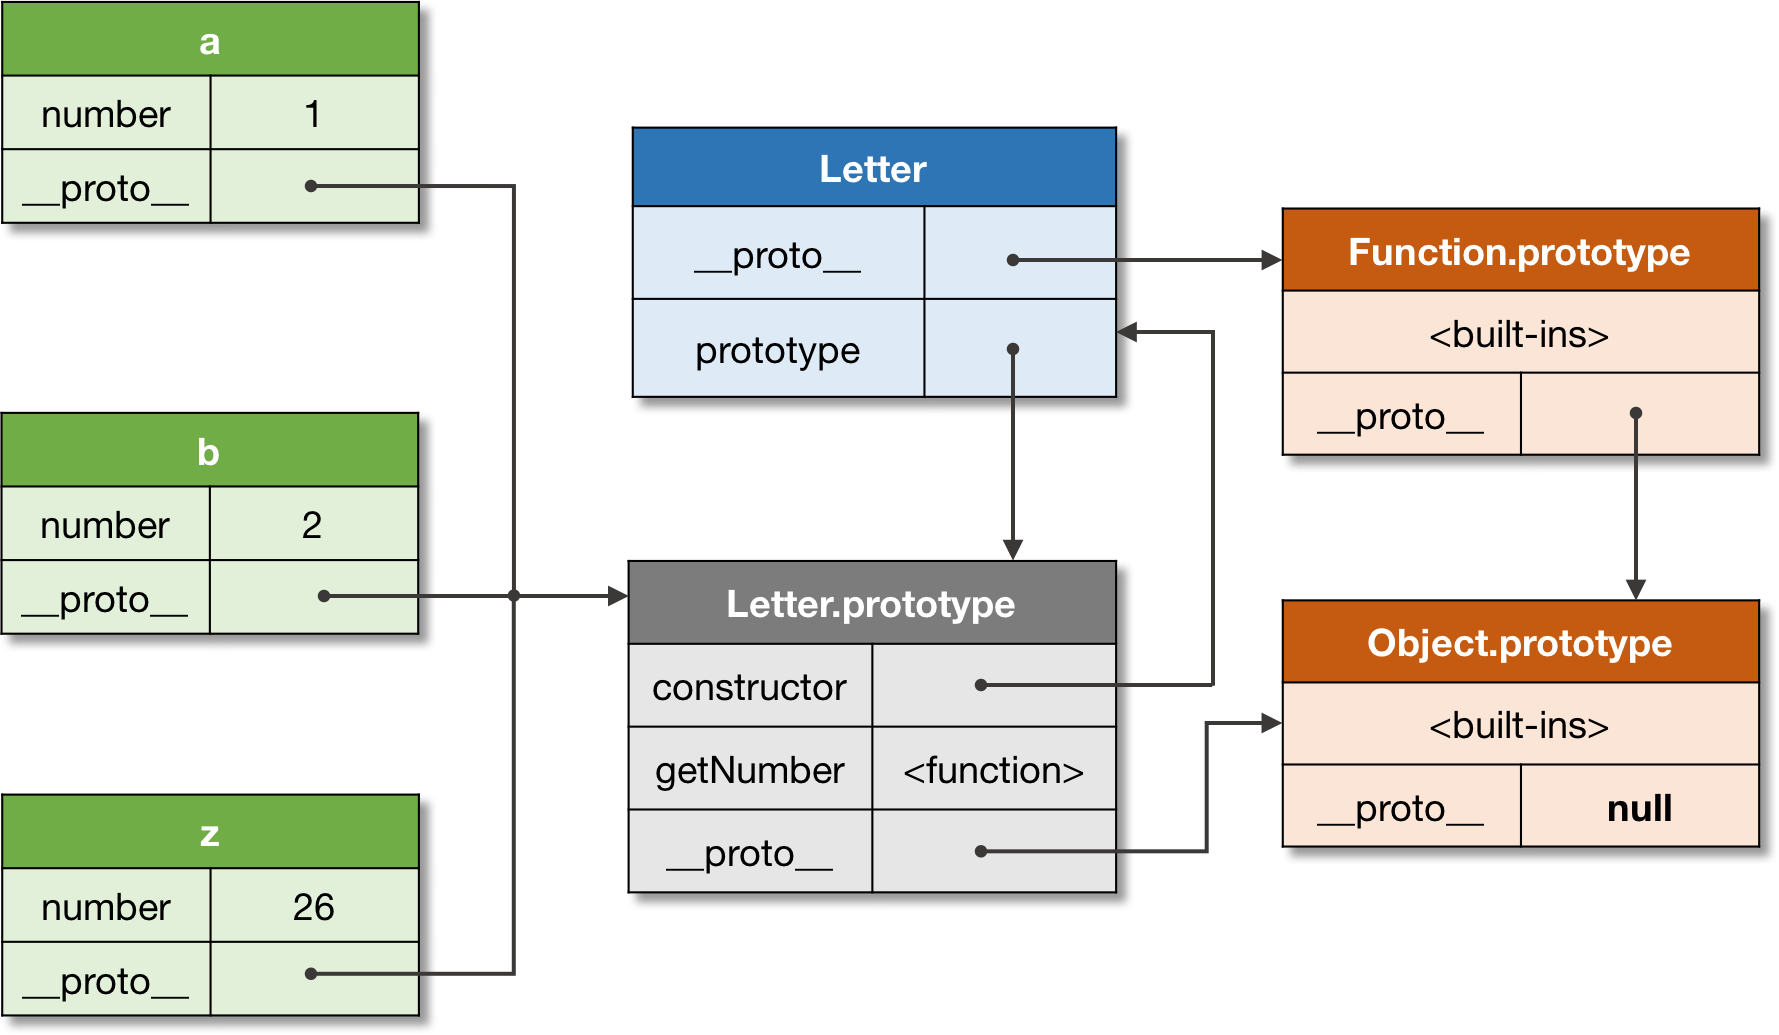 Figure 4. A constructor and objects relationship.